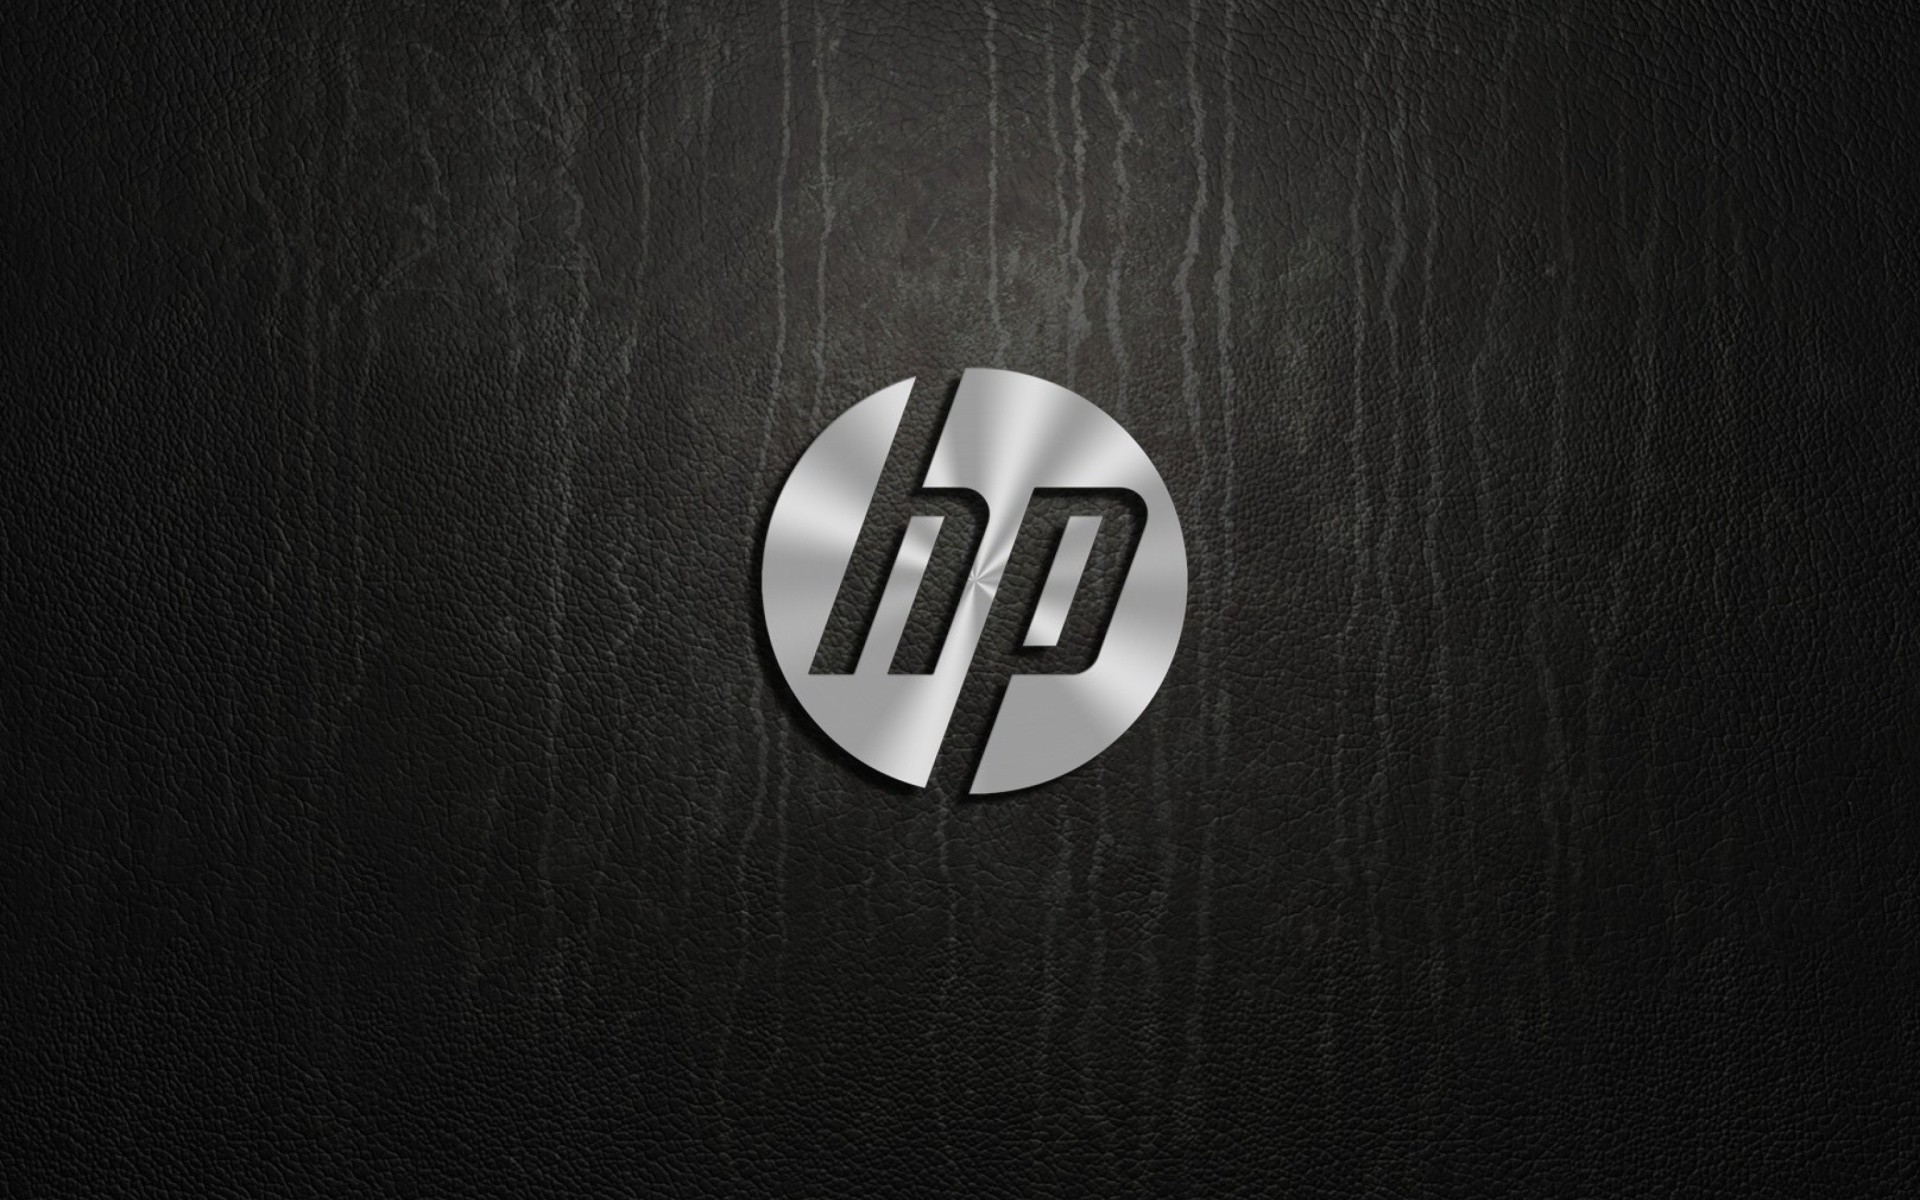 1920x1200 Windows Web Wallpaper Hewlett Packard Backgrounds A Wallppapers